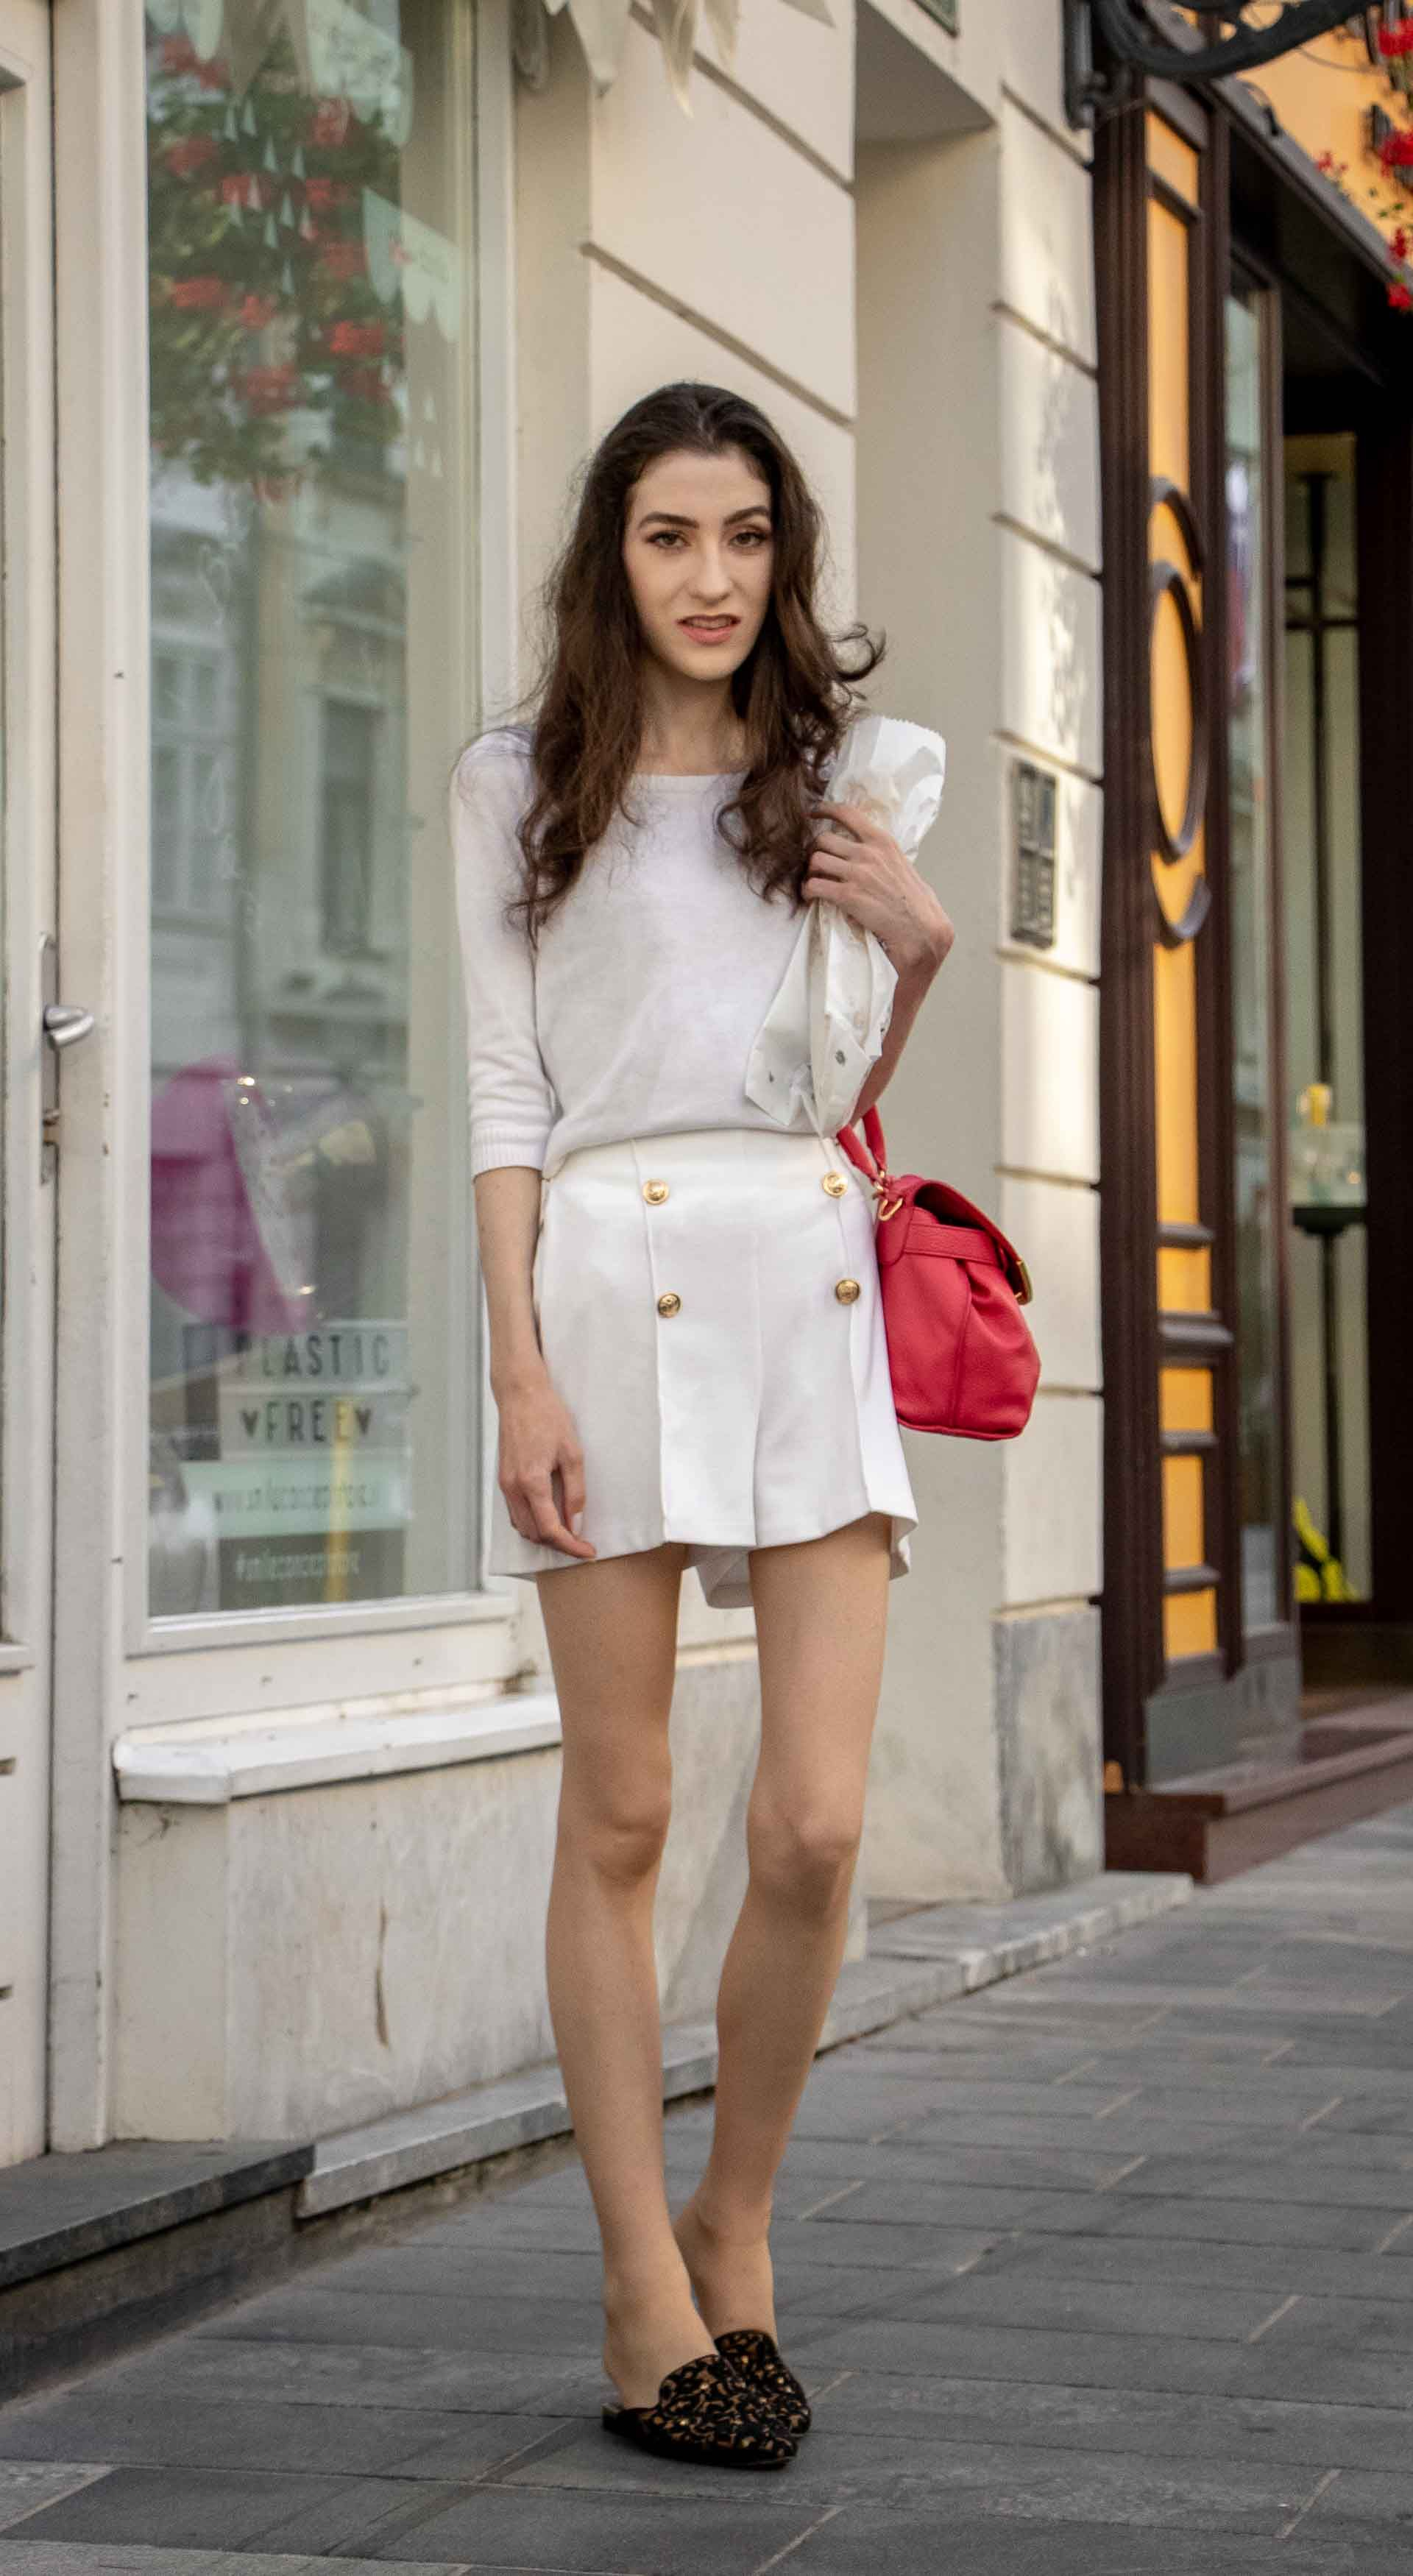 c6831d6ccc8d Beautiful Slovenian Fashion Blogger Veronika Lipar of Brunette from Wall  wearing all in white outfit